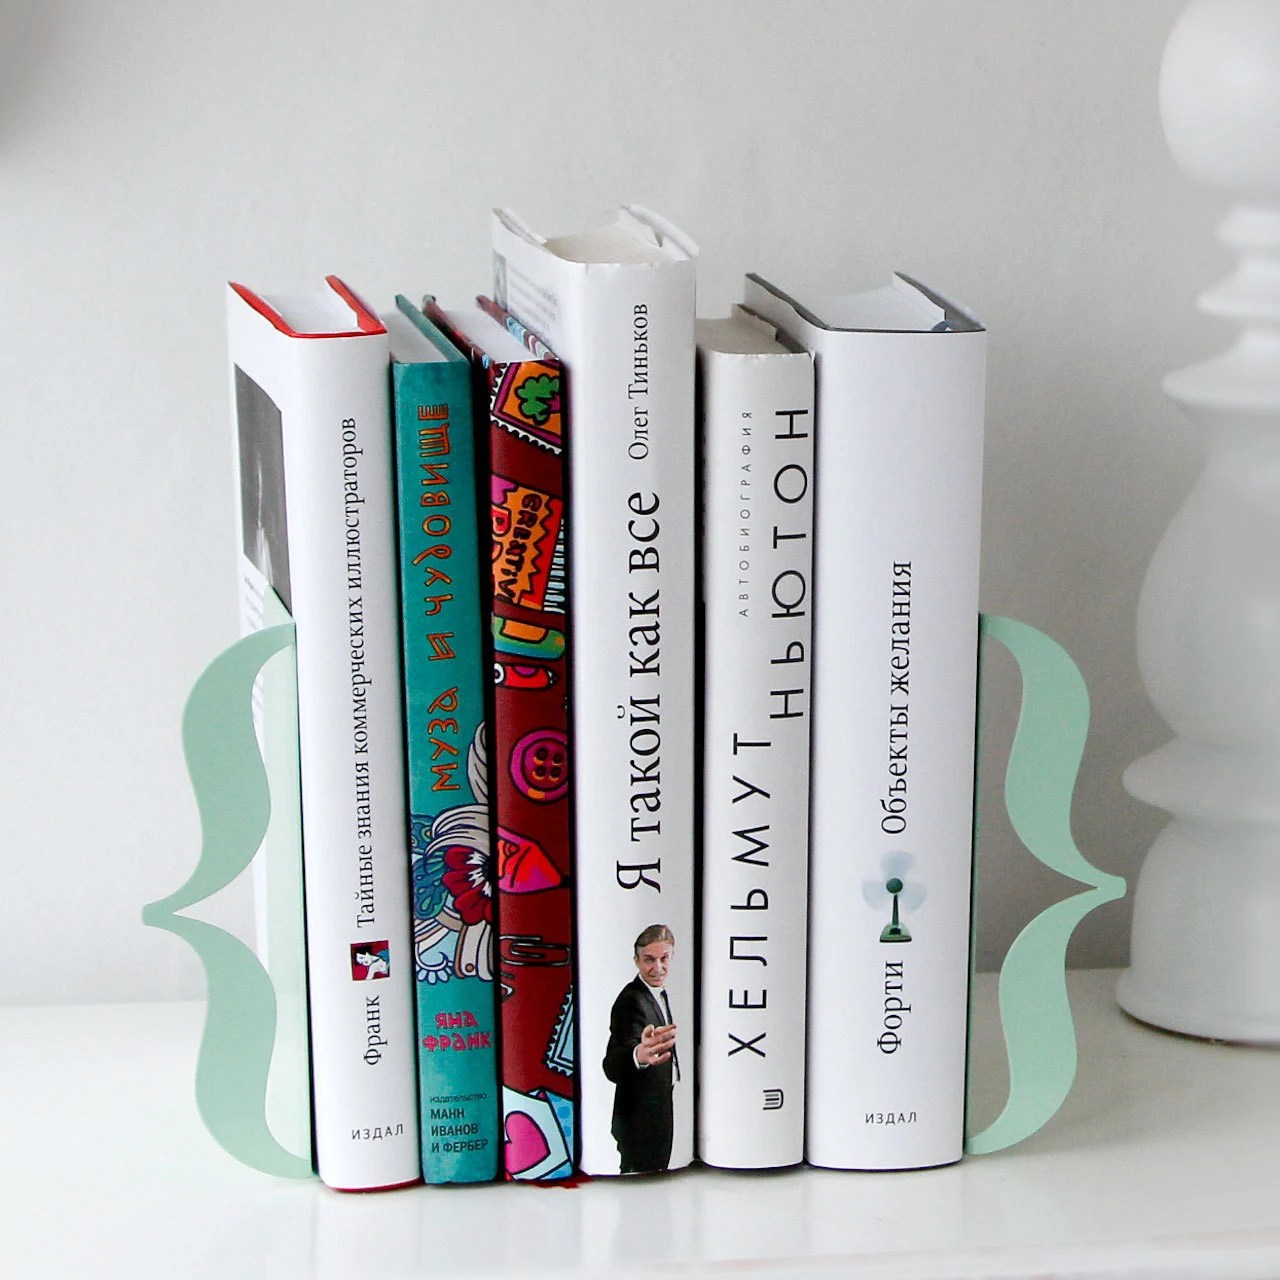 Bookends - Brackets (mint green) - laser cut for precision out of metal thick enough to hold a bunch of books.